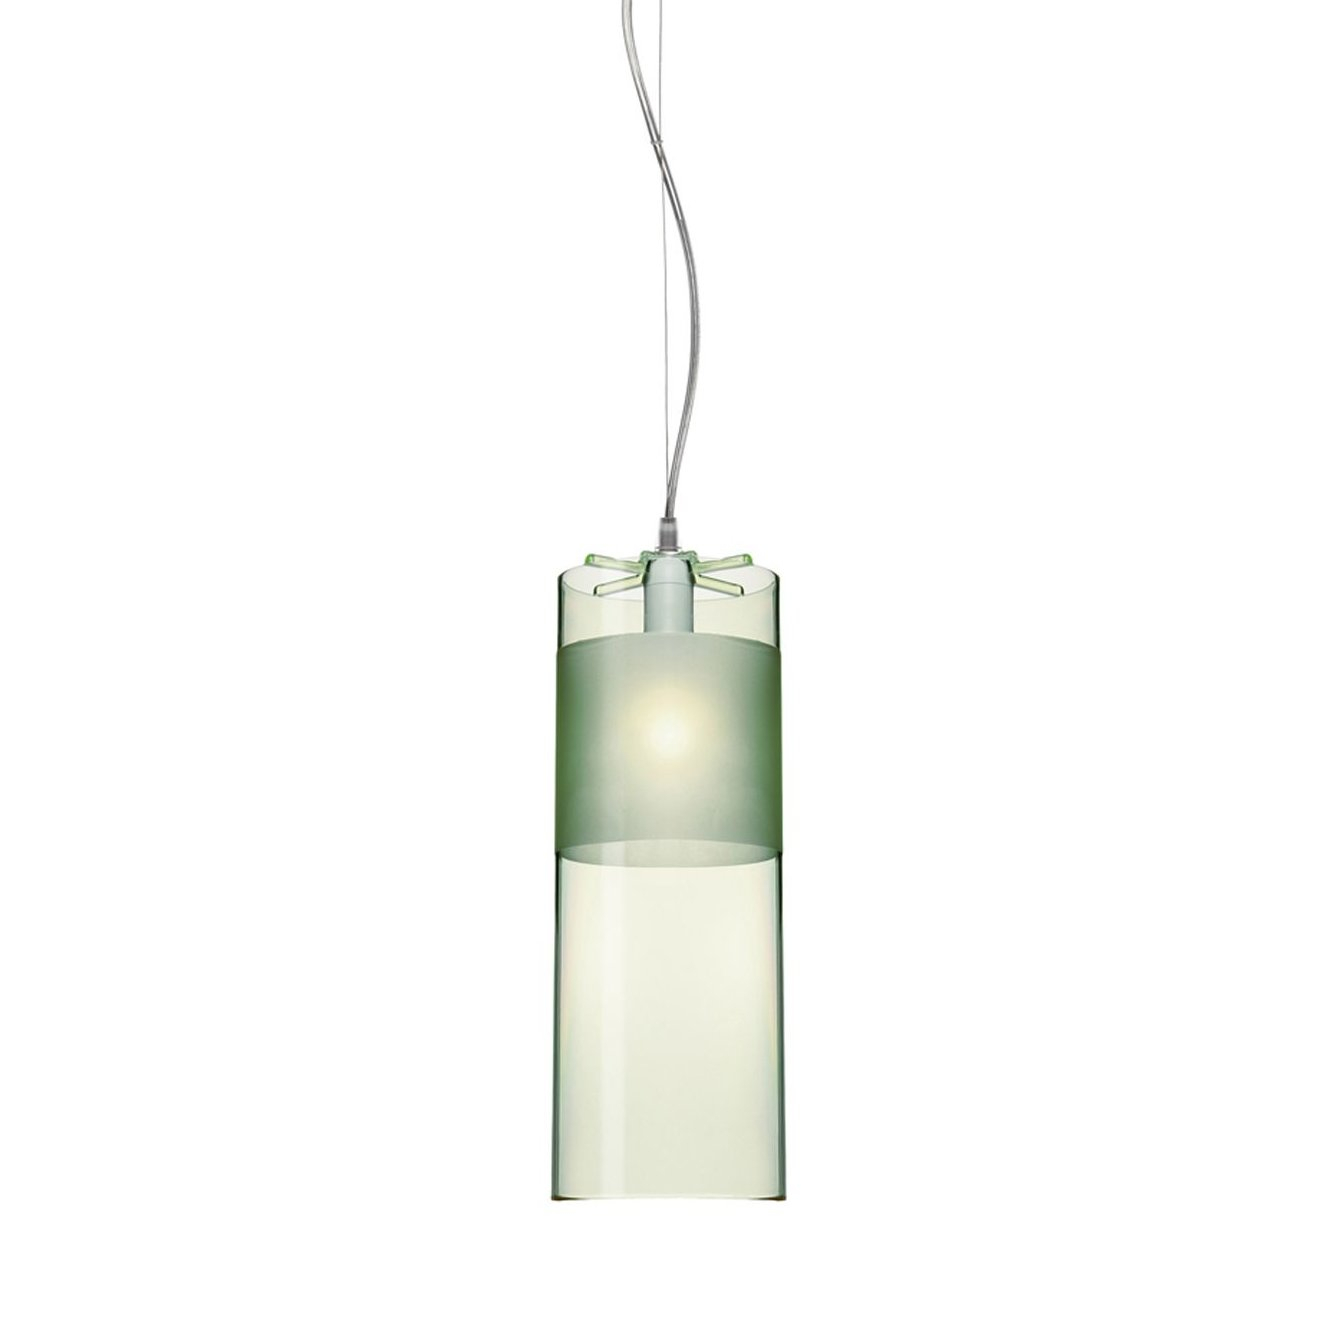 Easy 1 Light Single Cylinder Pendant Inside Wadlington 6 Light Single Cylinder Pendants (View 5 of 30)